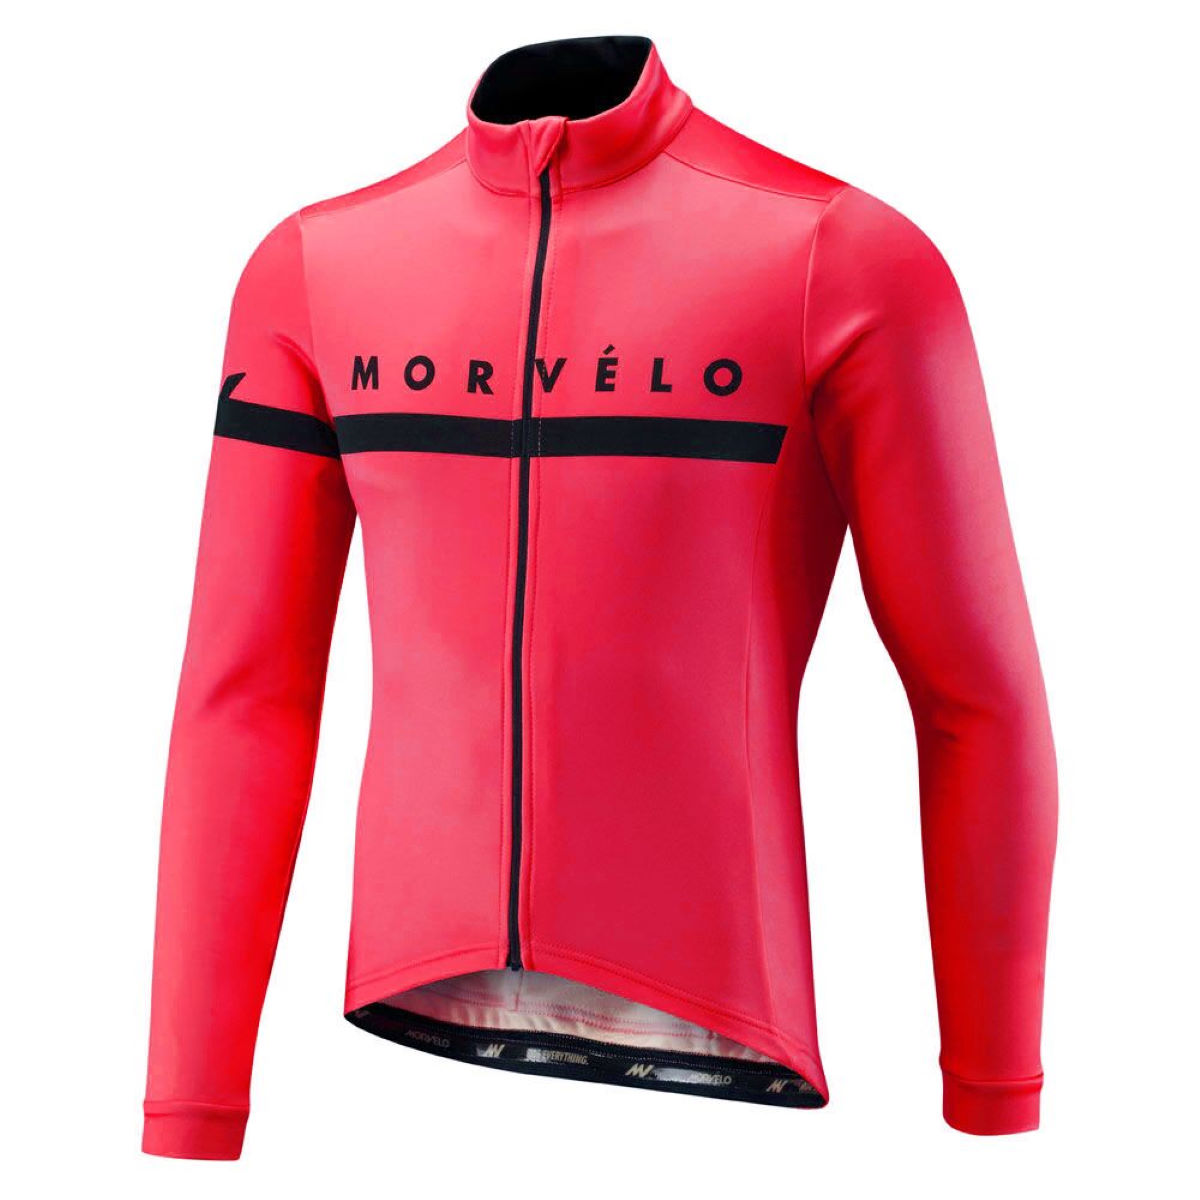 Maillot Morvelo Kuler Thermoactive (manches longues) - M Kuler Red